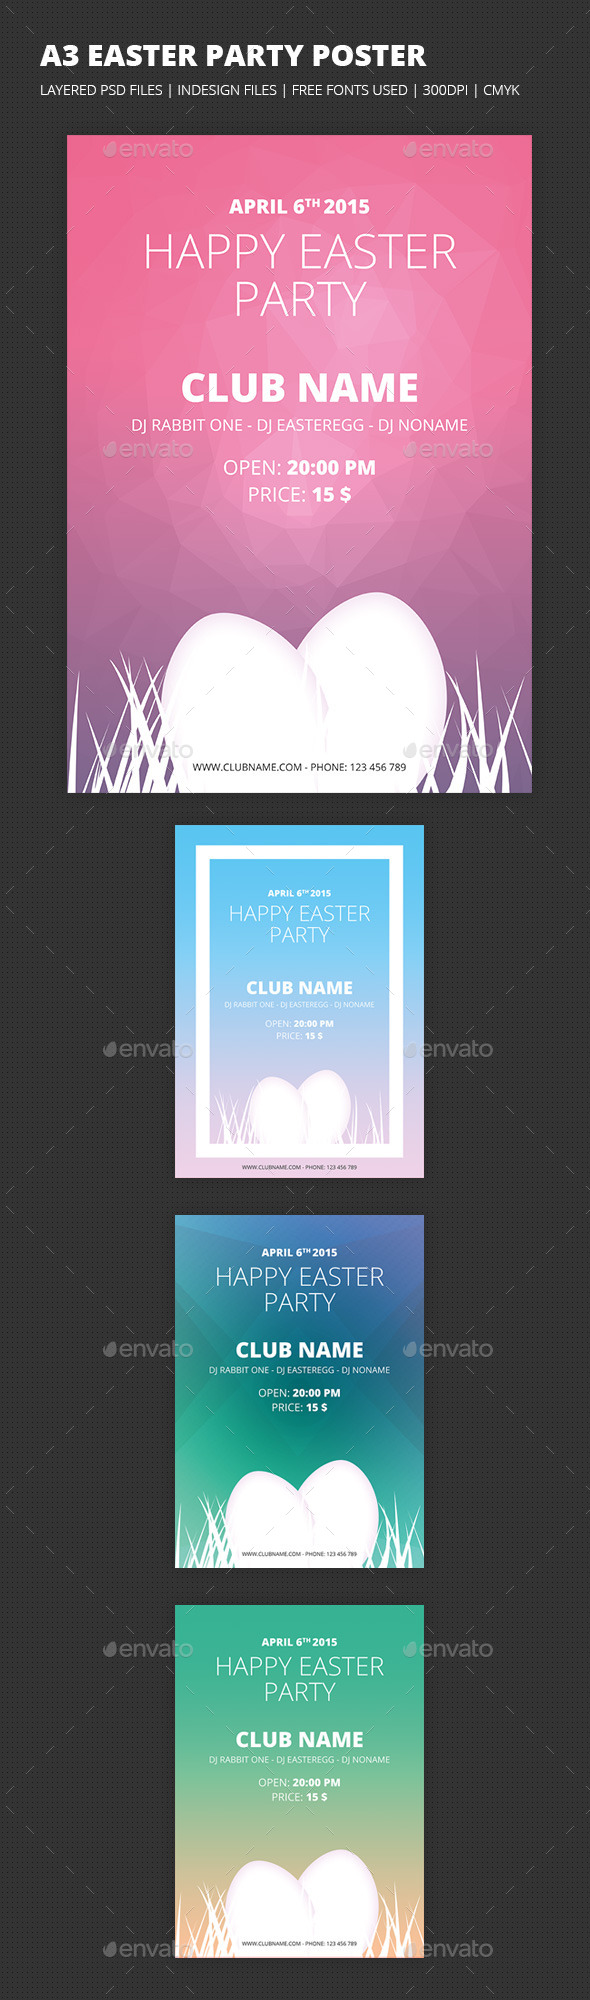 GraphicRiver A3 Easter Party Poster 9638771